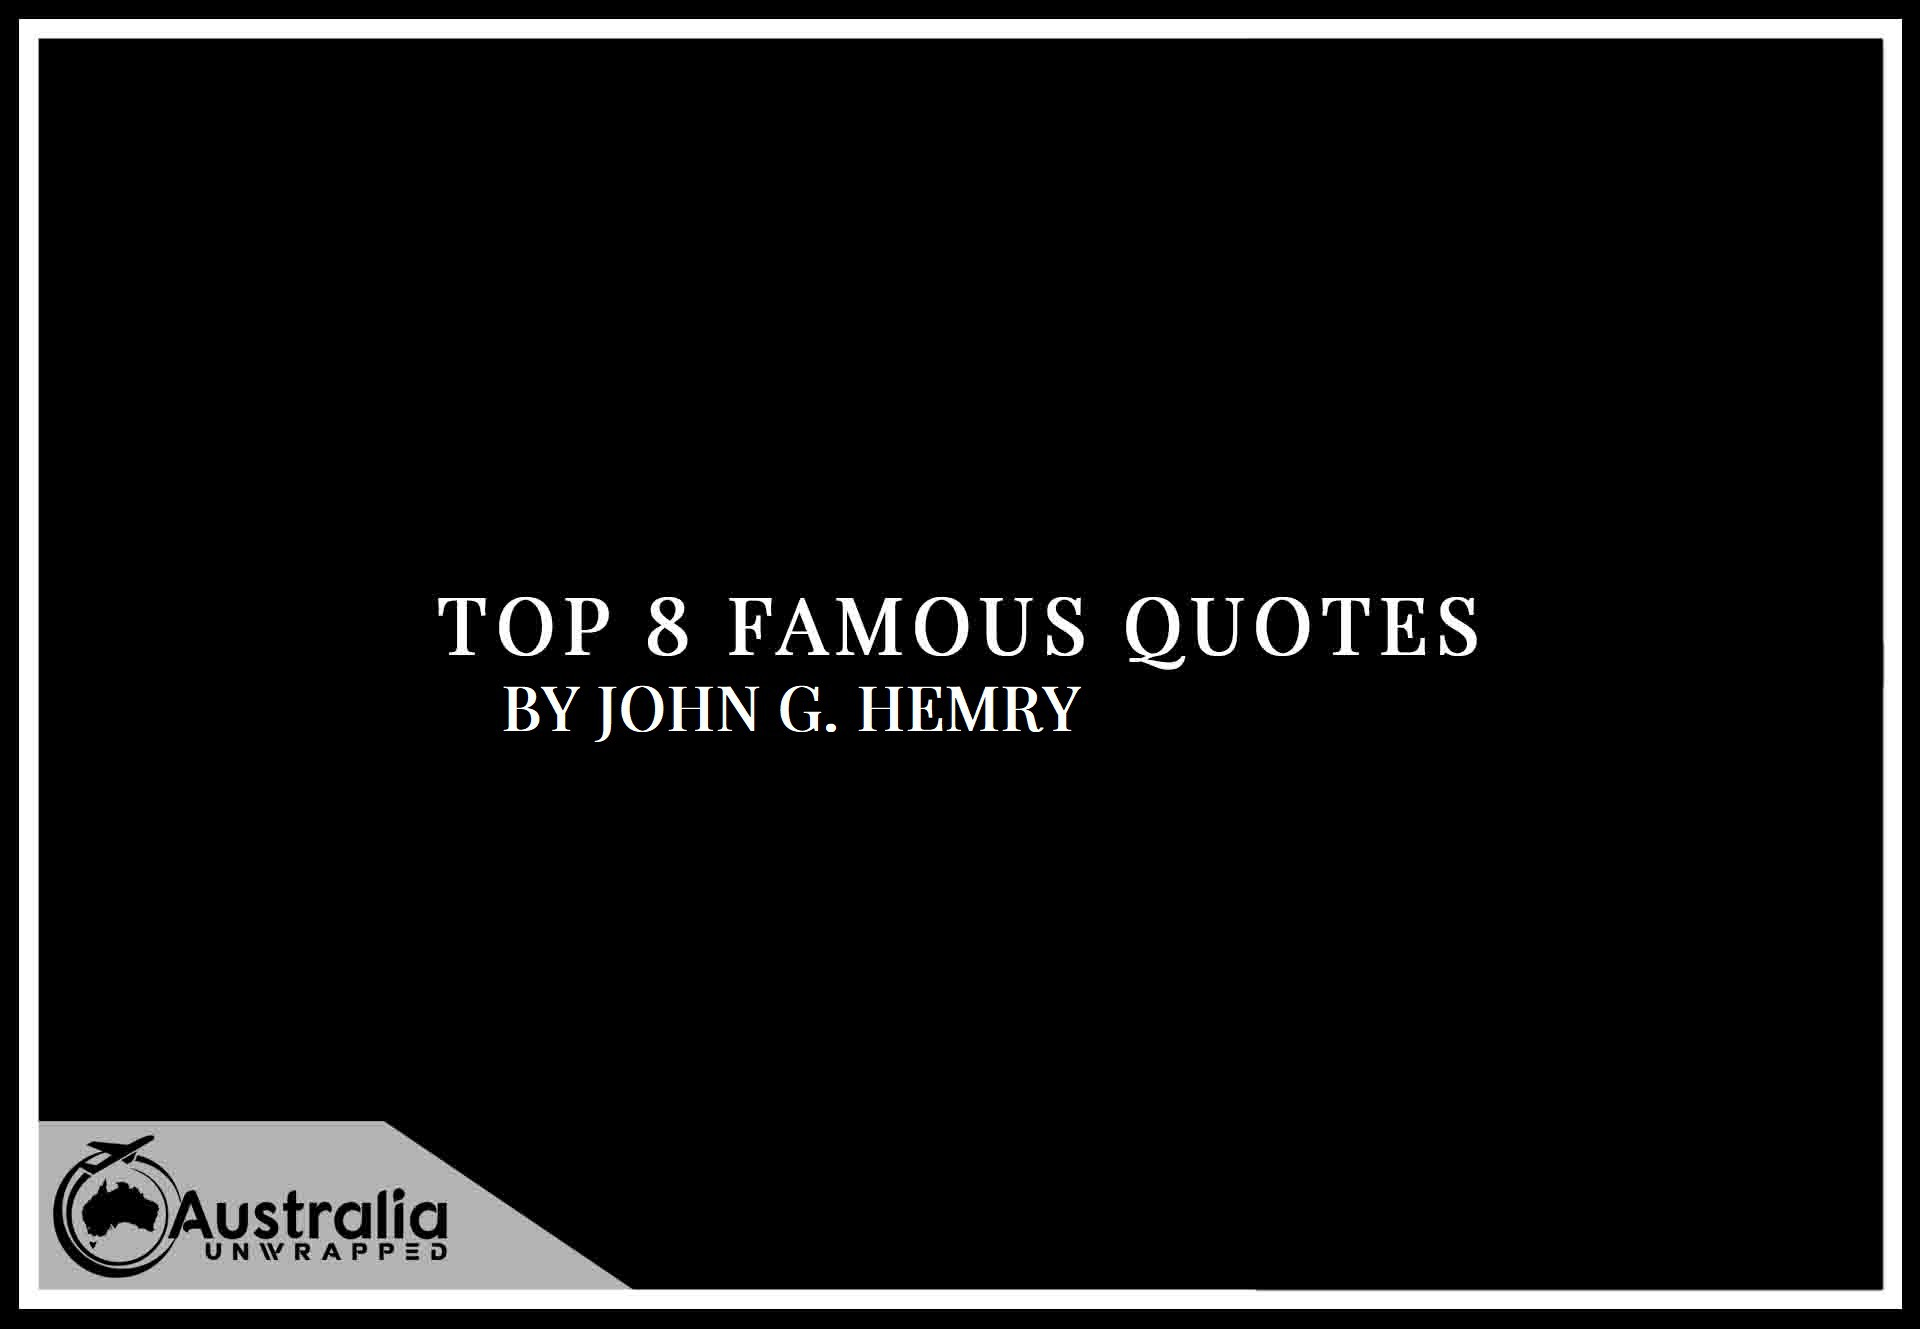 Top 8 Famous Quotes by Author John G. Hemry